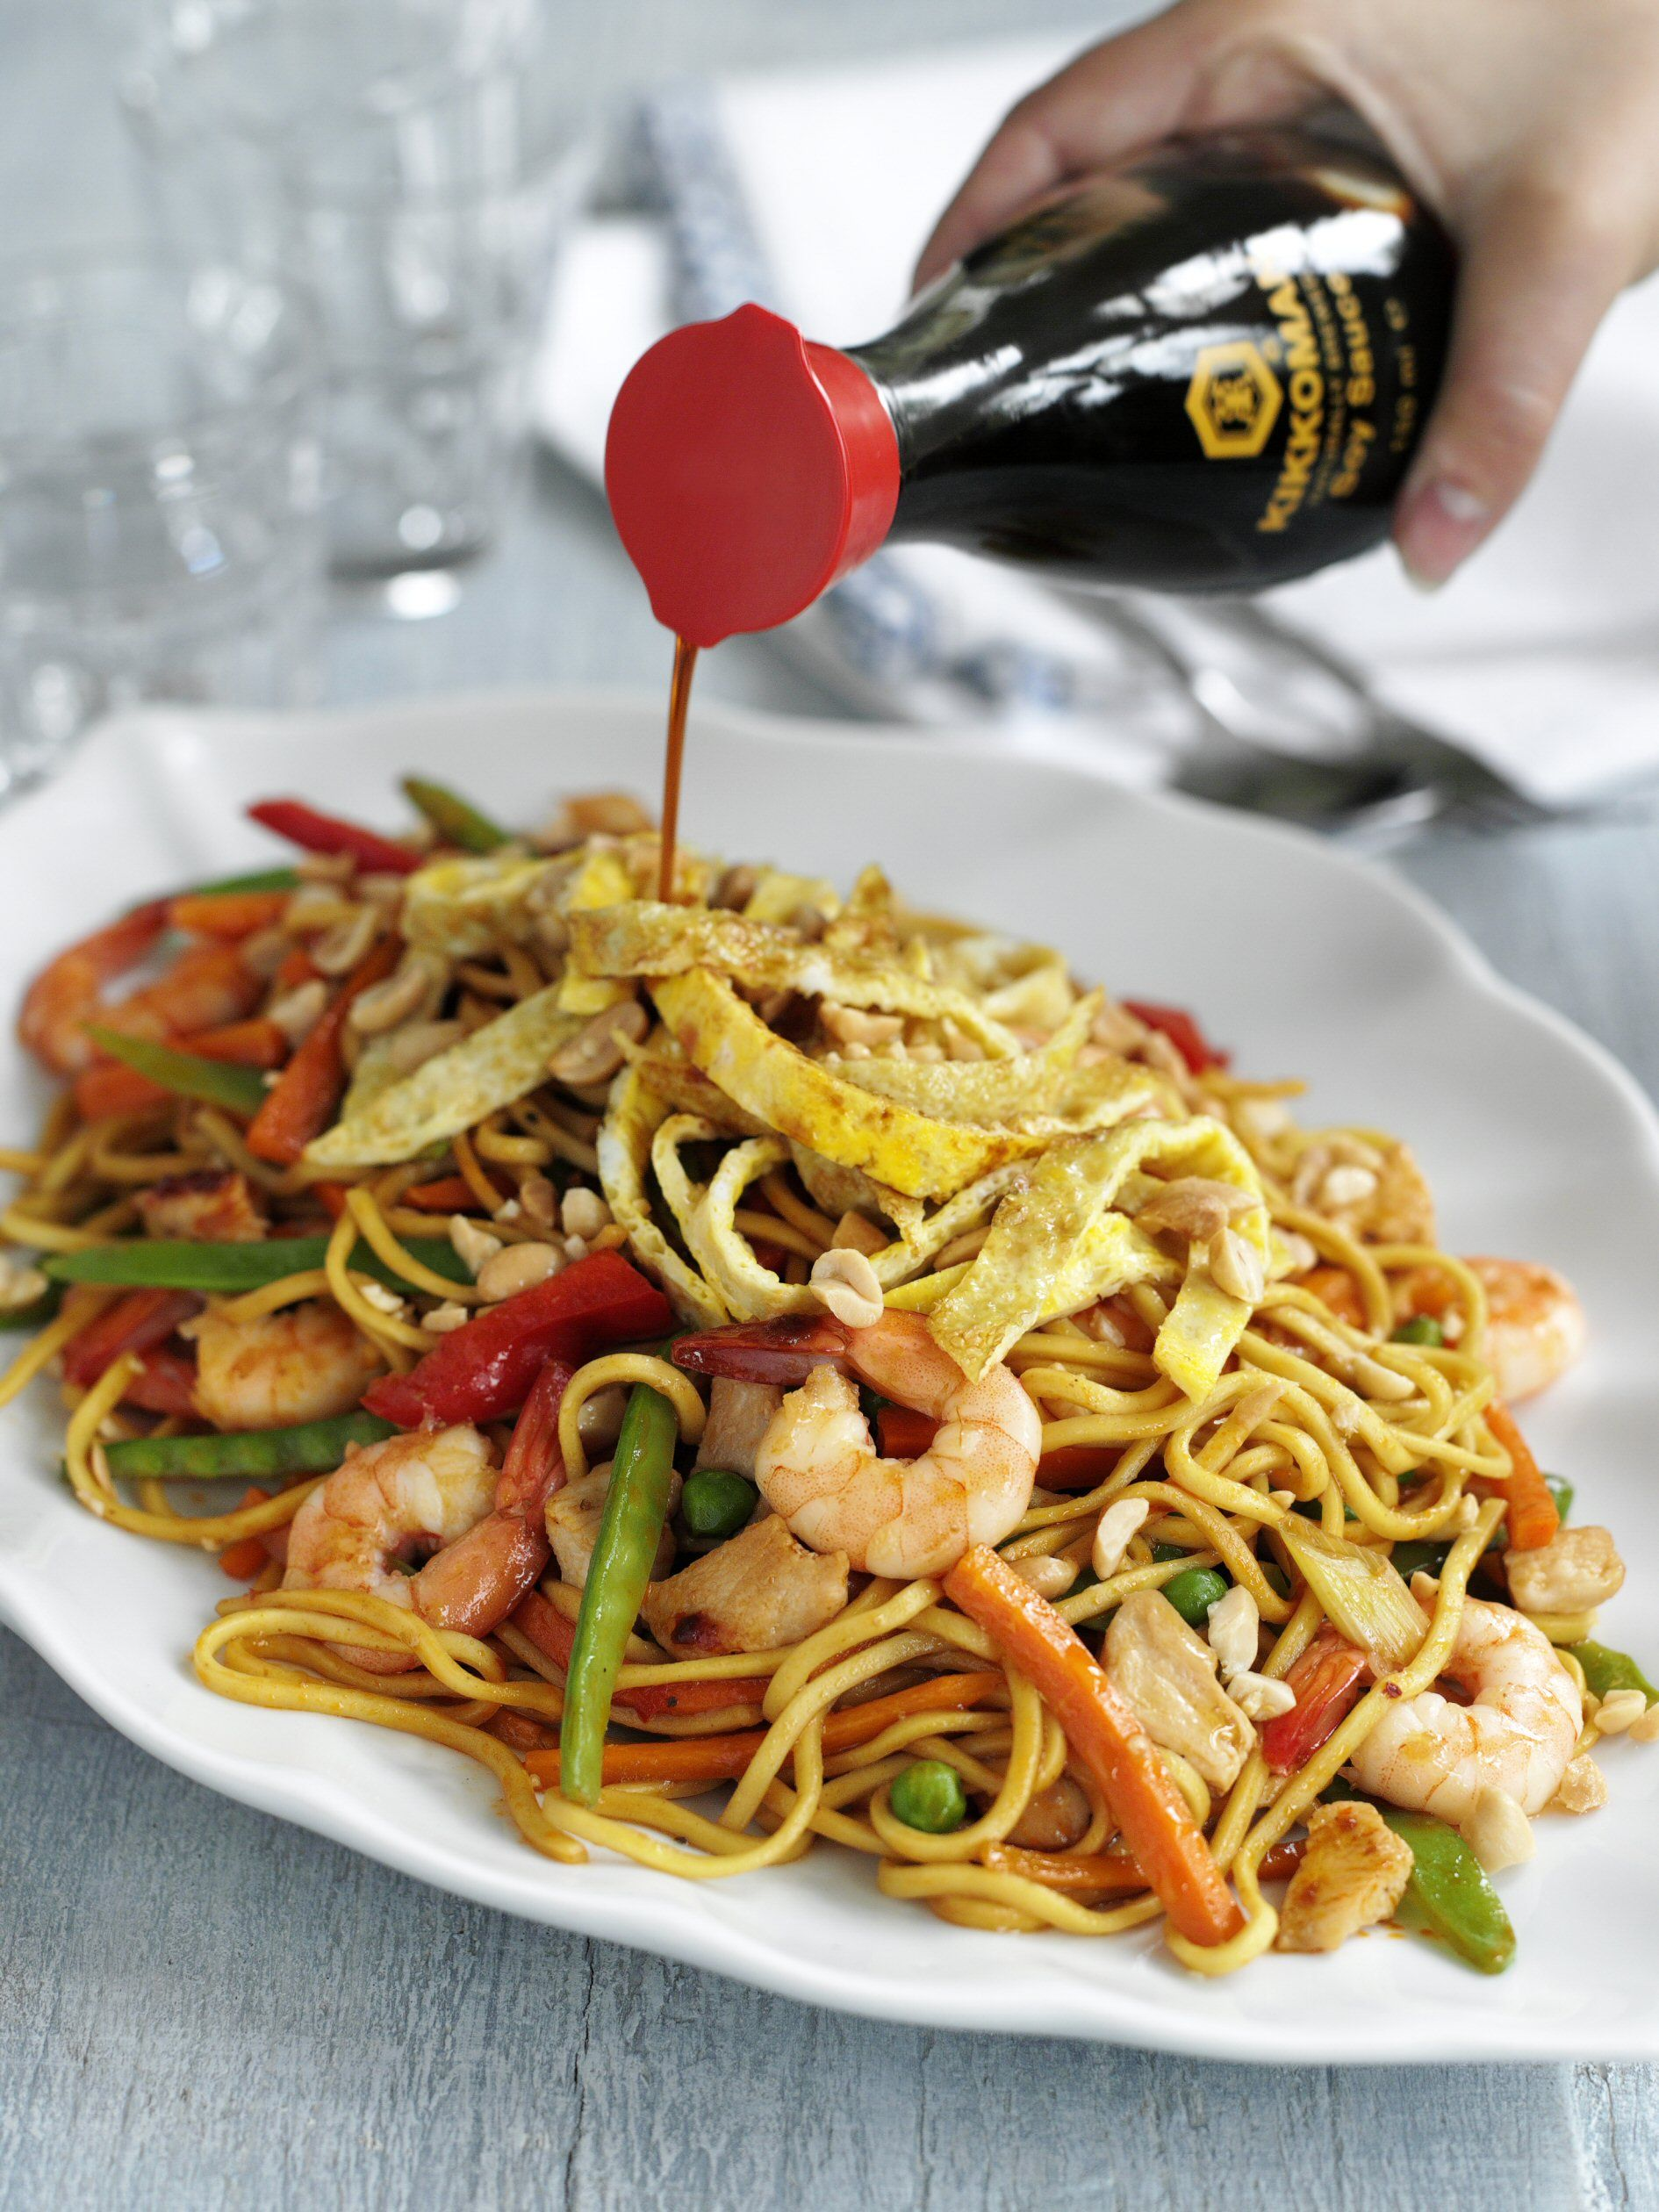 Celebrate Chinese New Year with this delicious #Bami #Goreng recipe ...